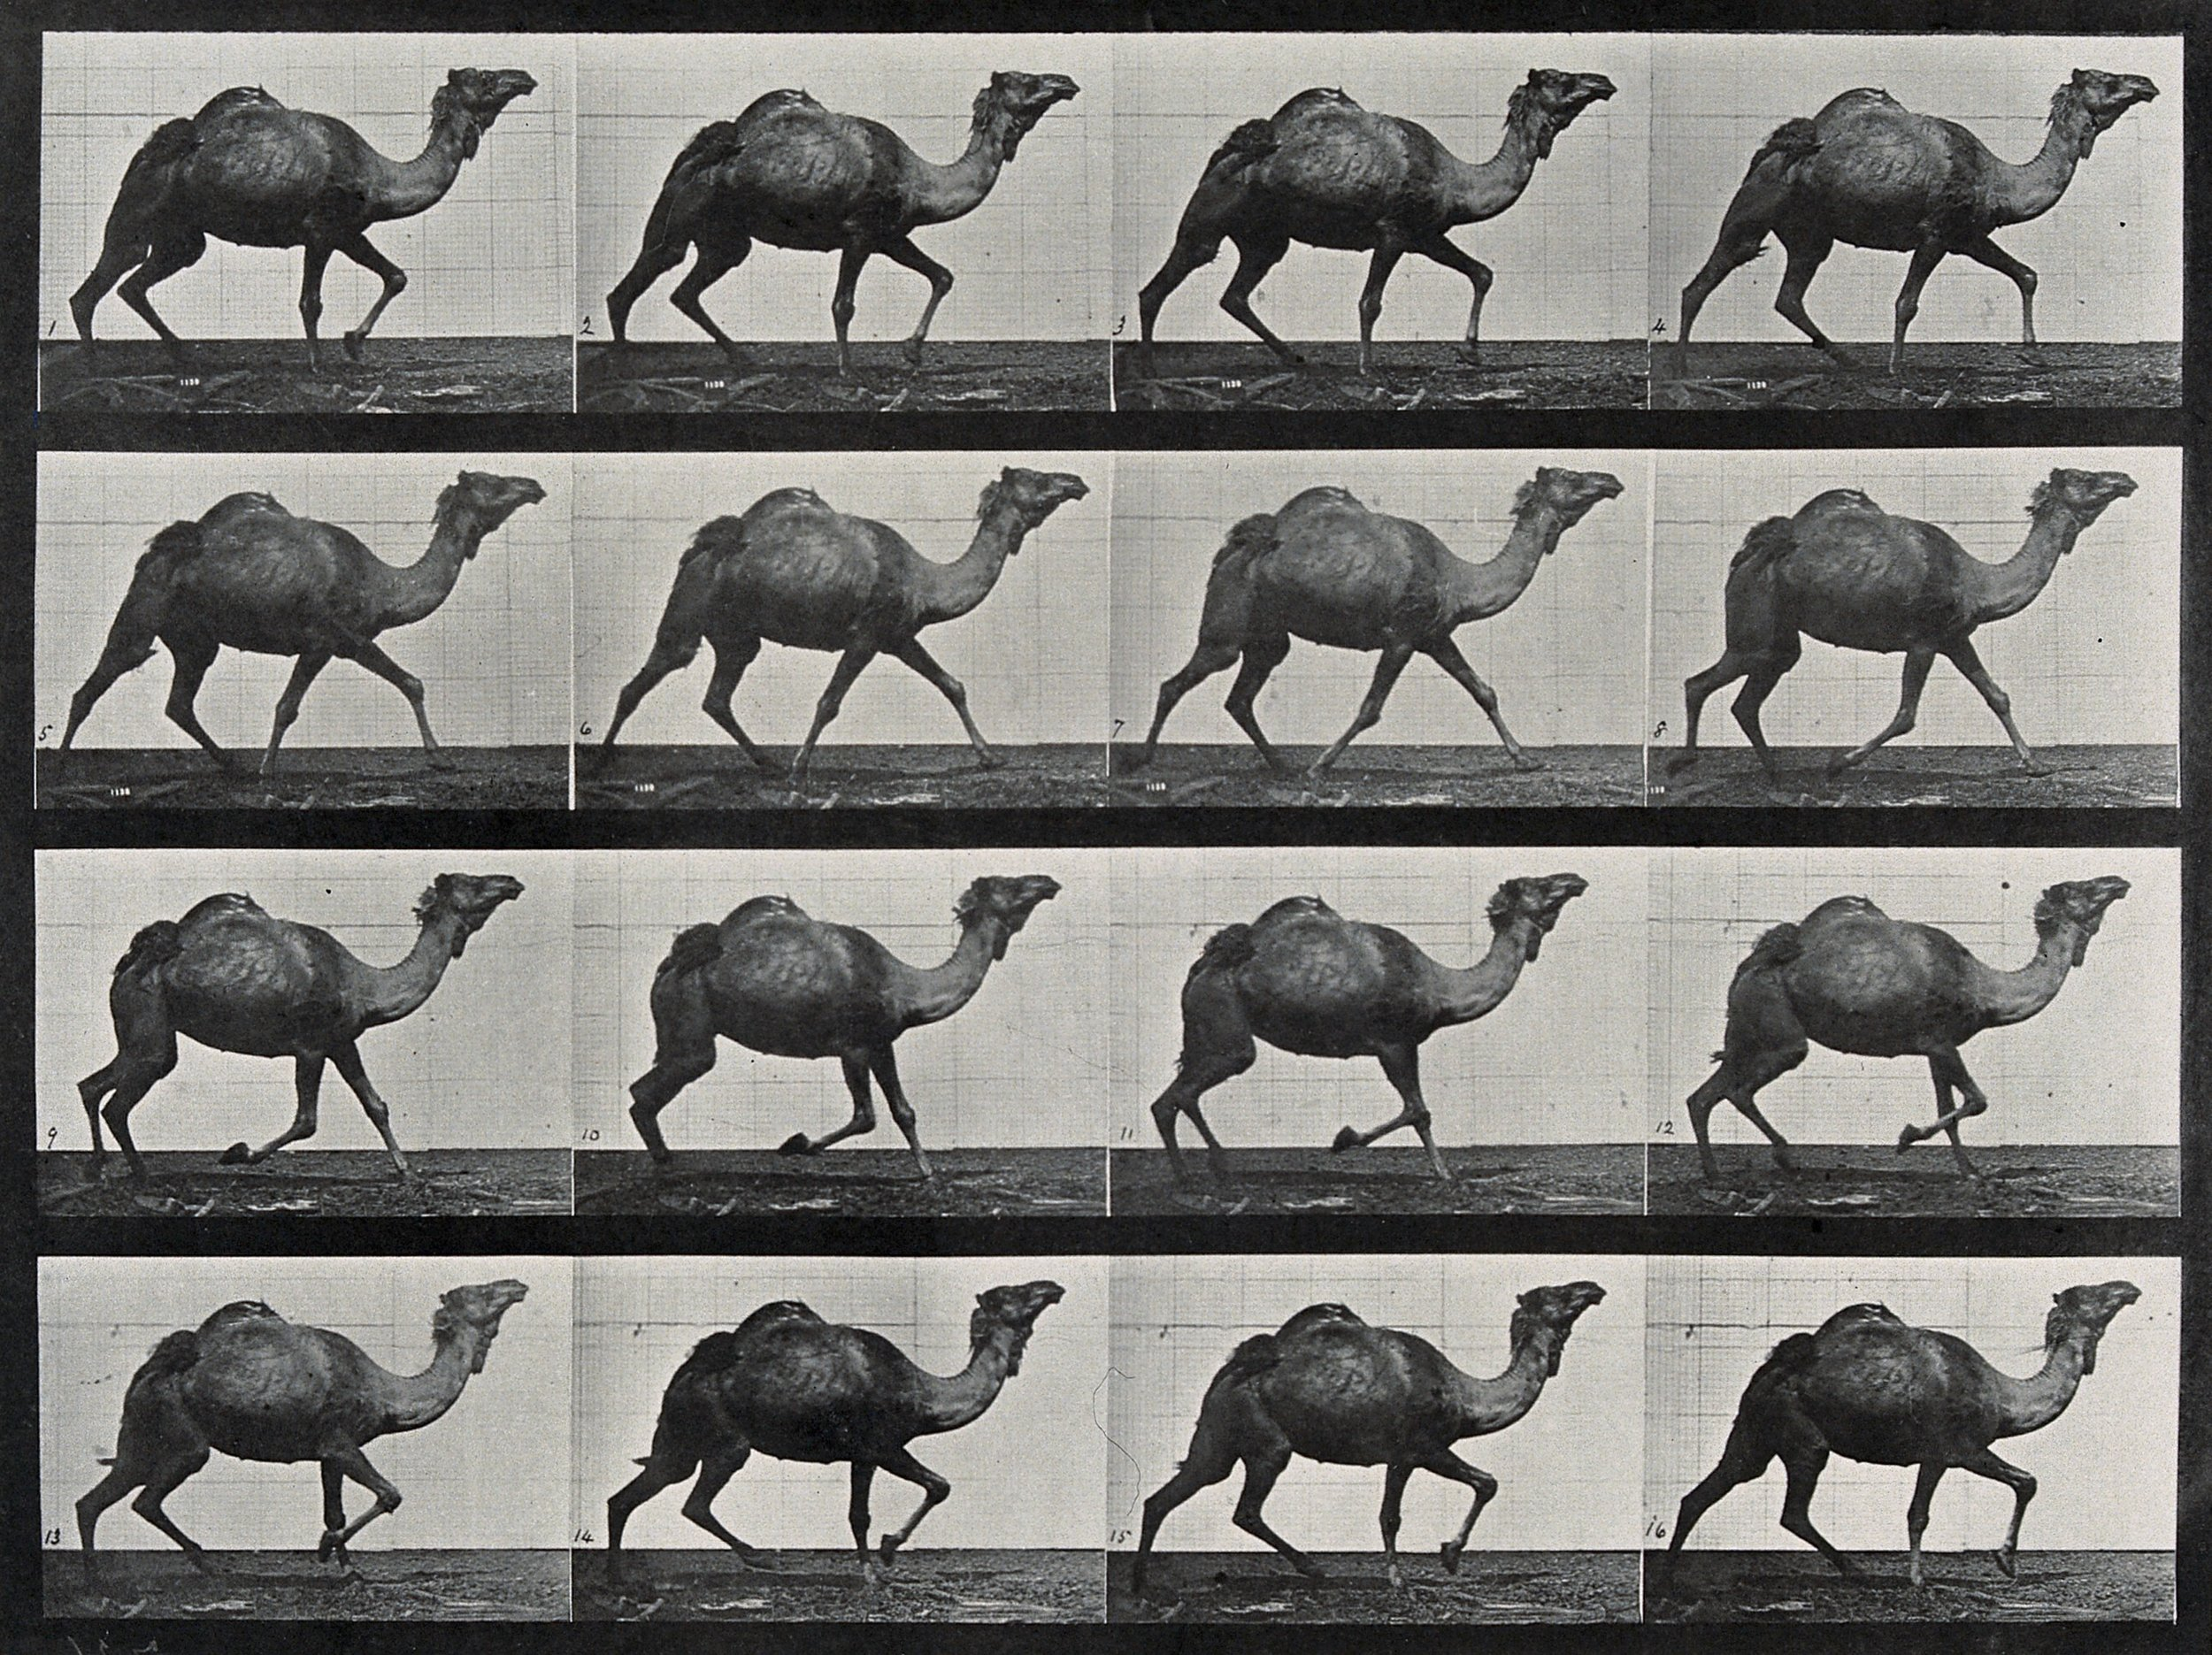 Eadweard Muybridge, A single humpback camel walking (CC-BY)